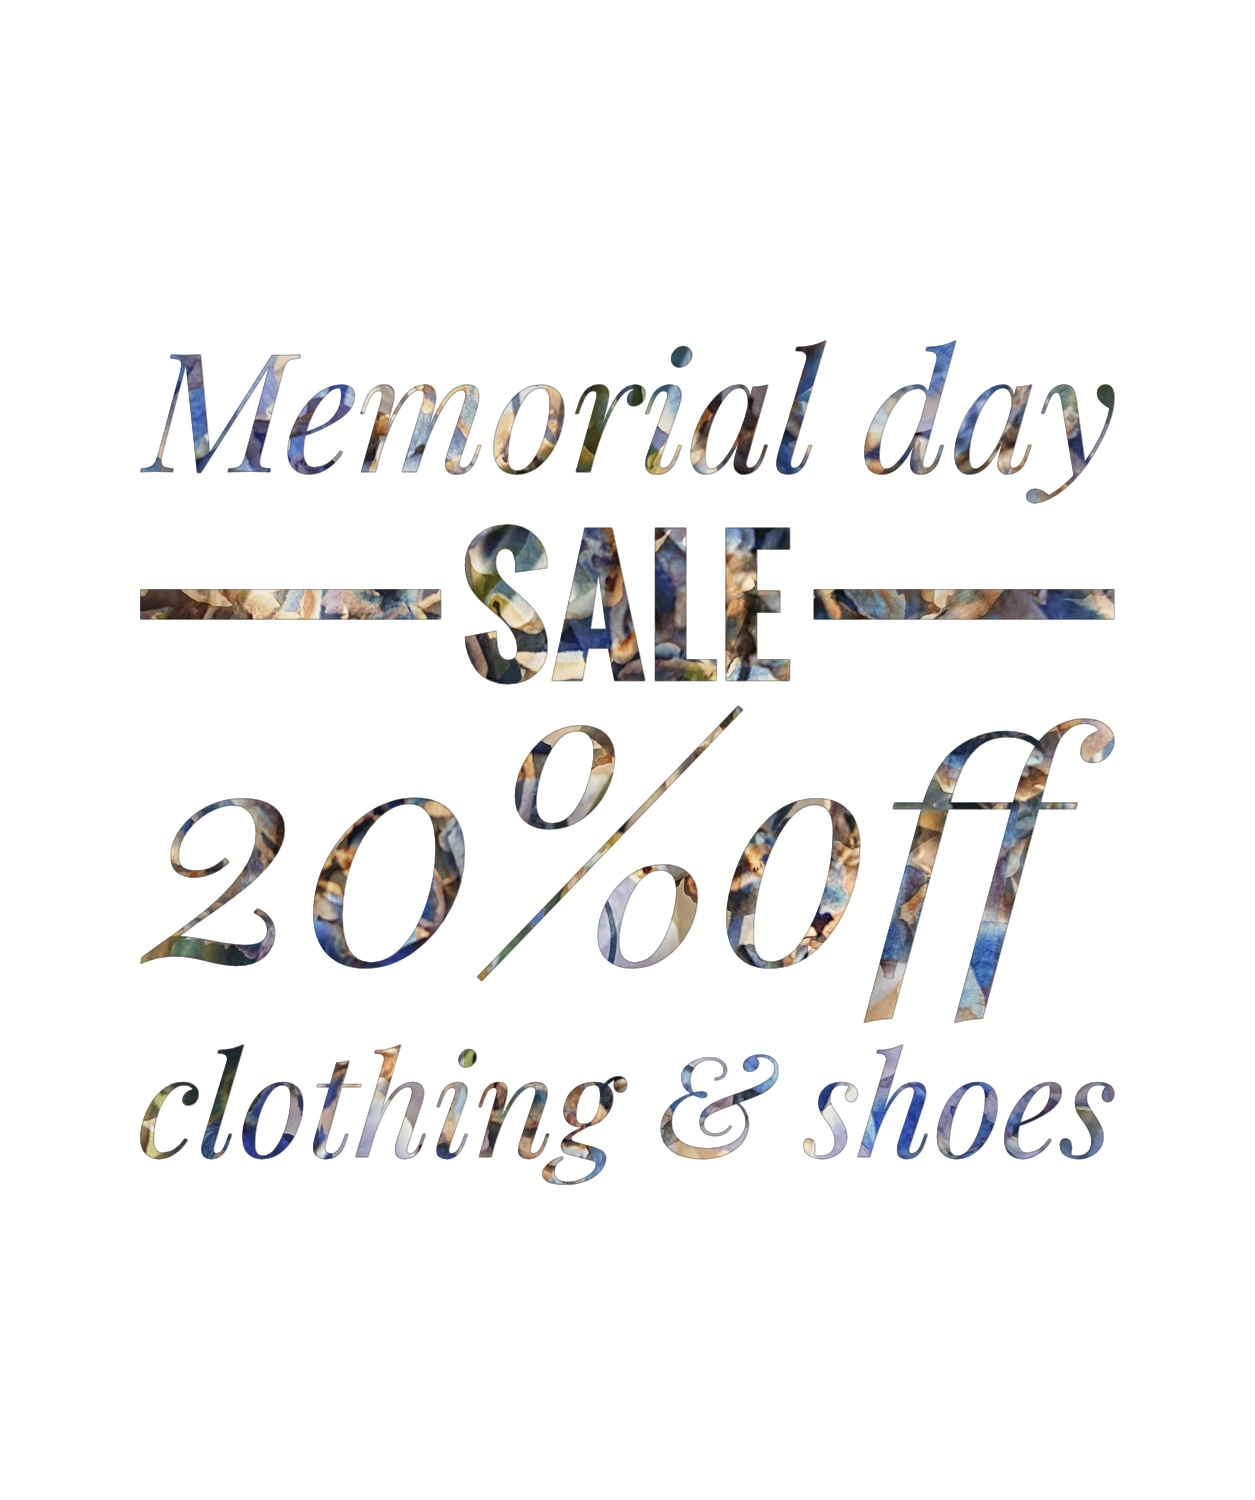 - Expires 6/9/2019 applies to regular priced spring items only, can not be combined with any other coupon or discounts.